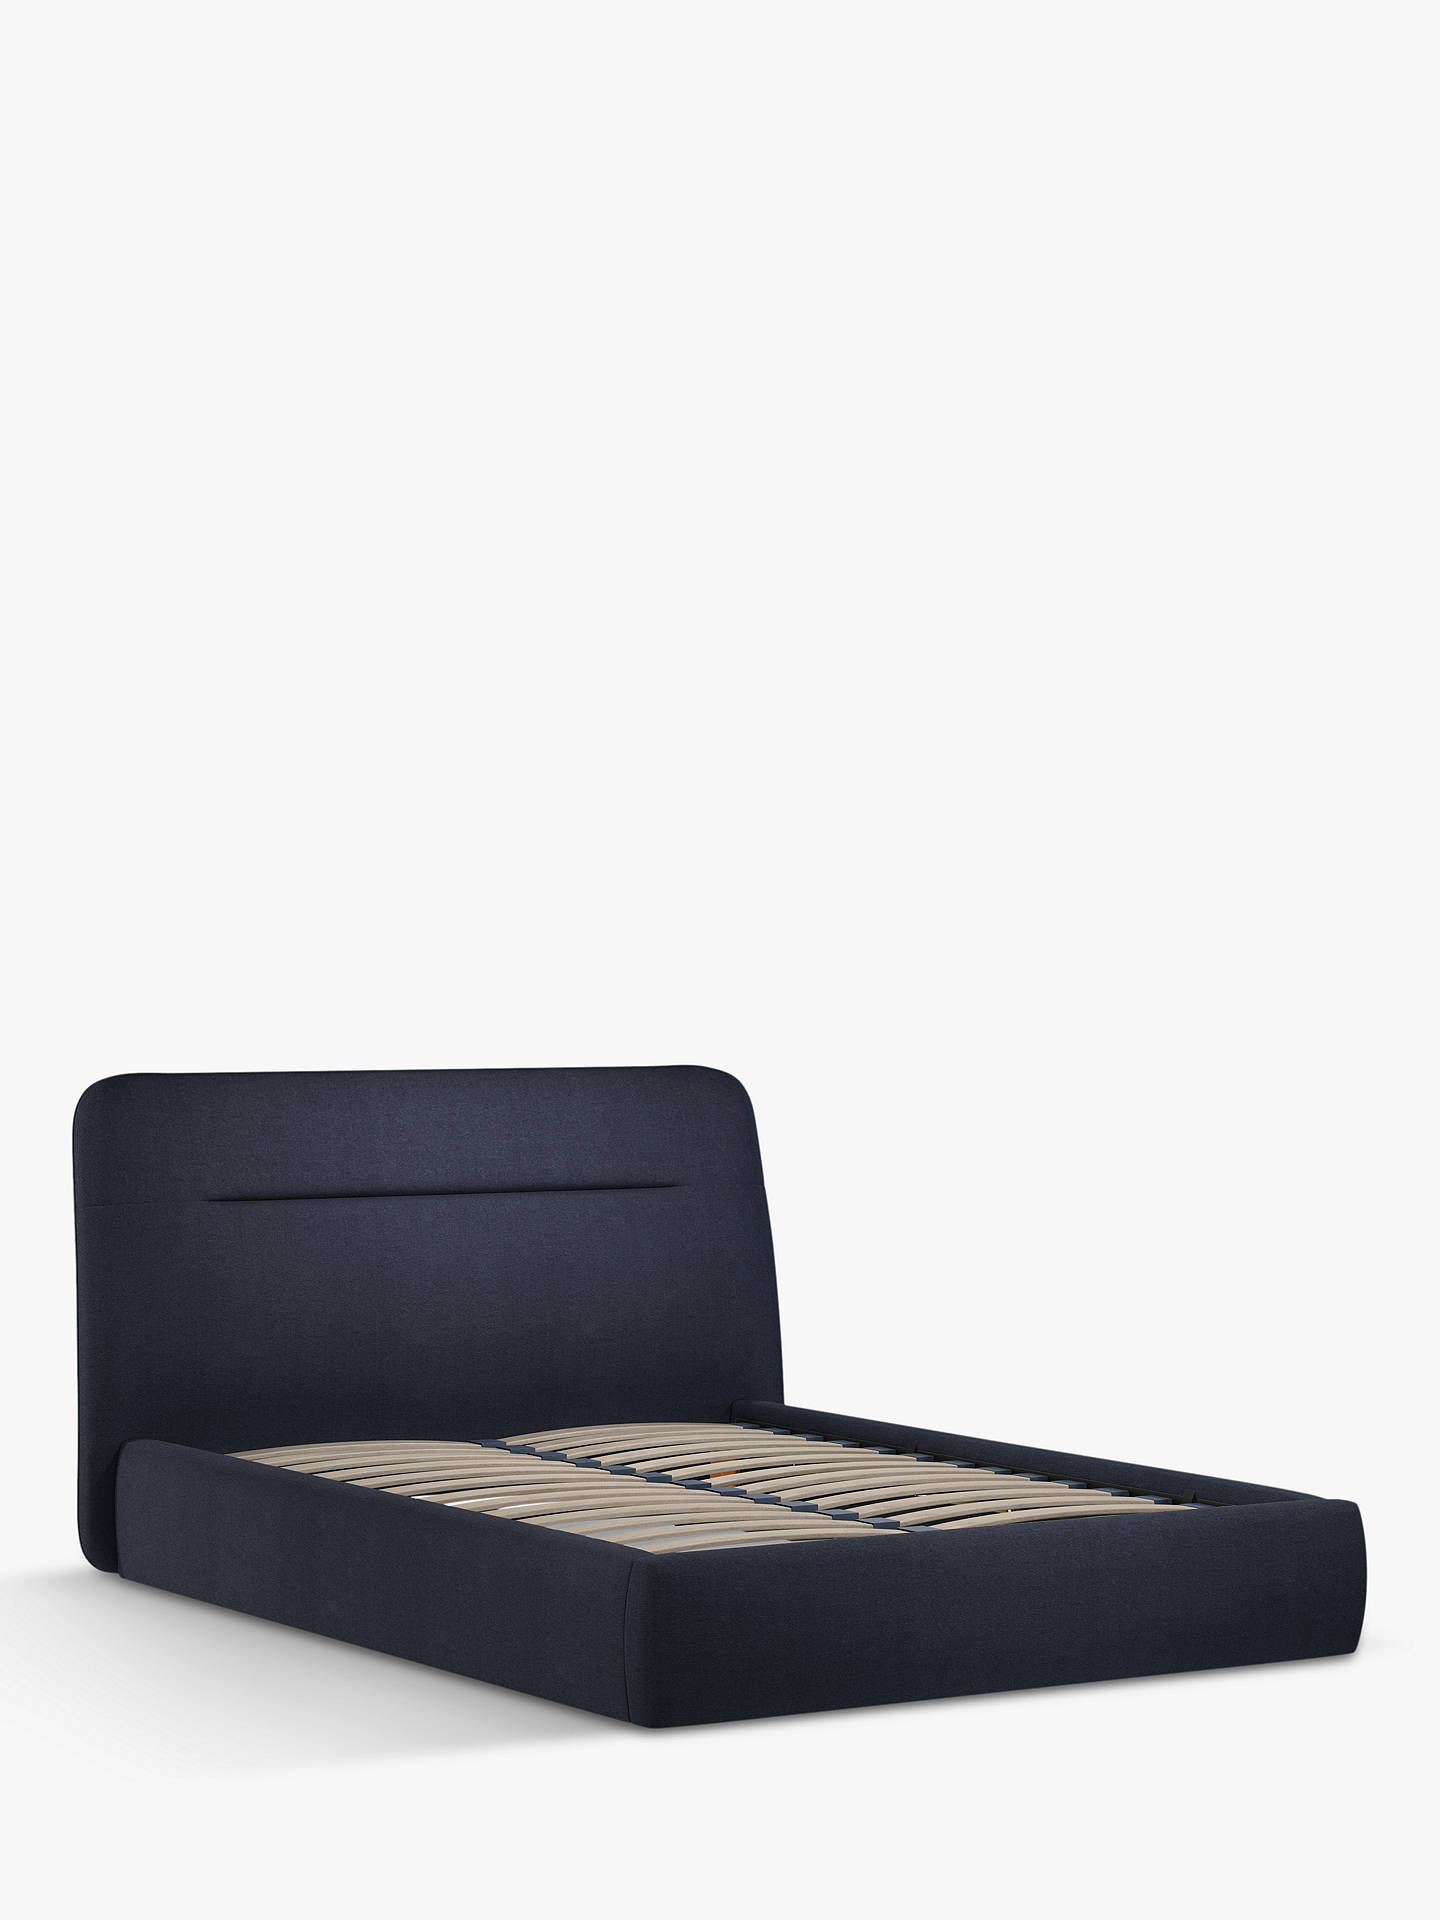 Buy Design Project by John Lewis No.152 Ottoman Storage Upholstered Bed Frame, Double, Marylamb Night Sky Online at johnlewis.com